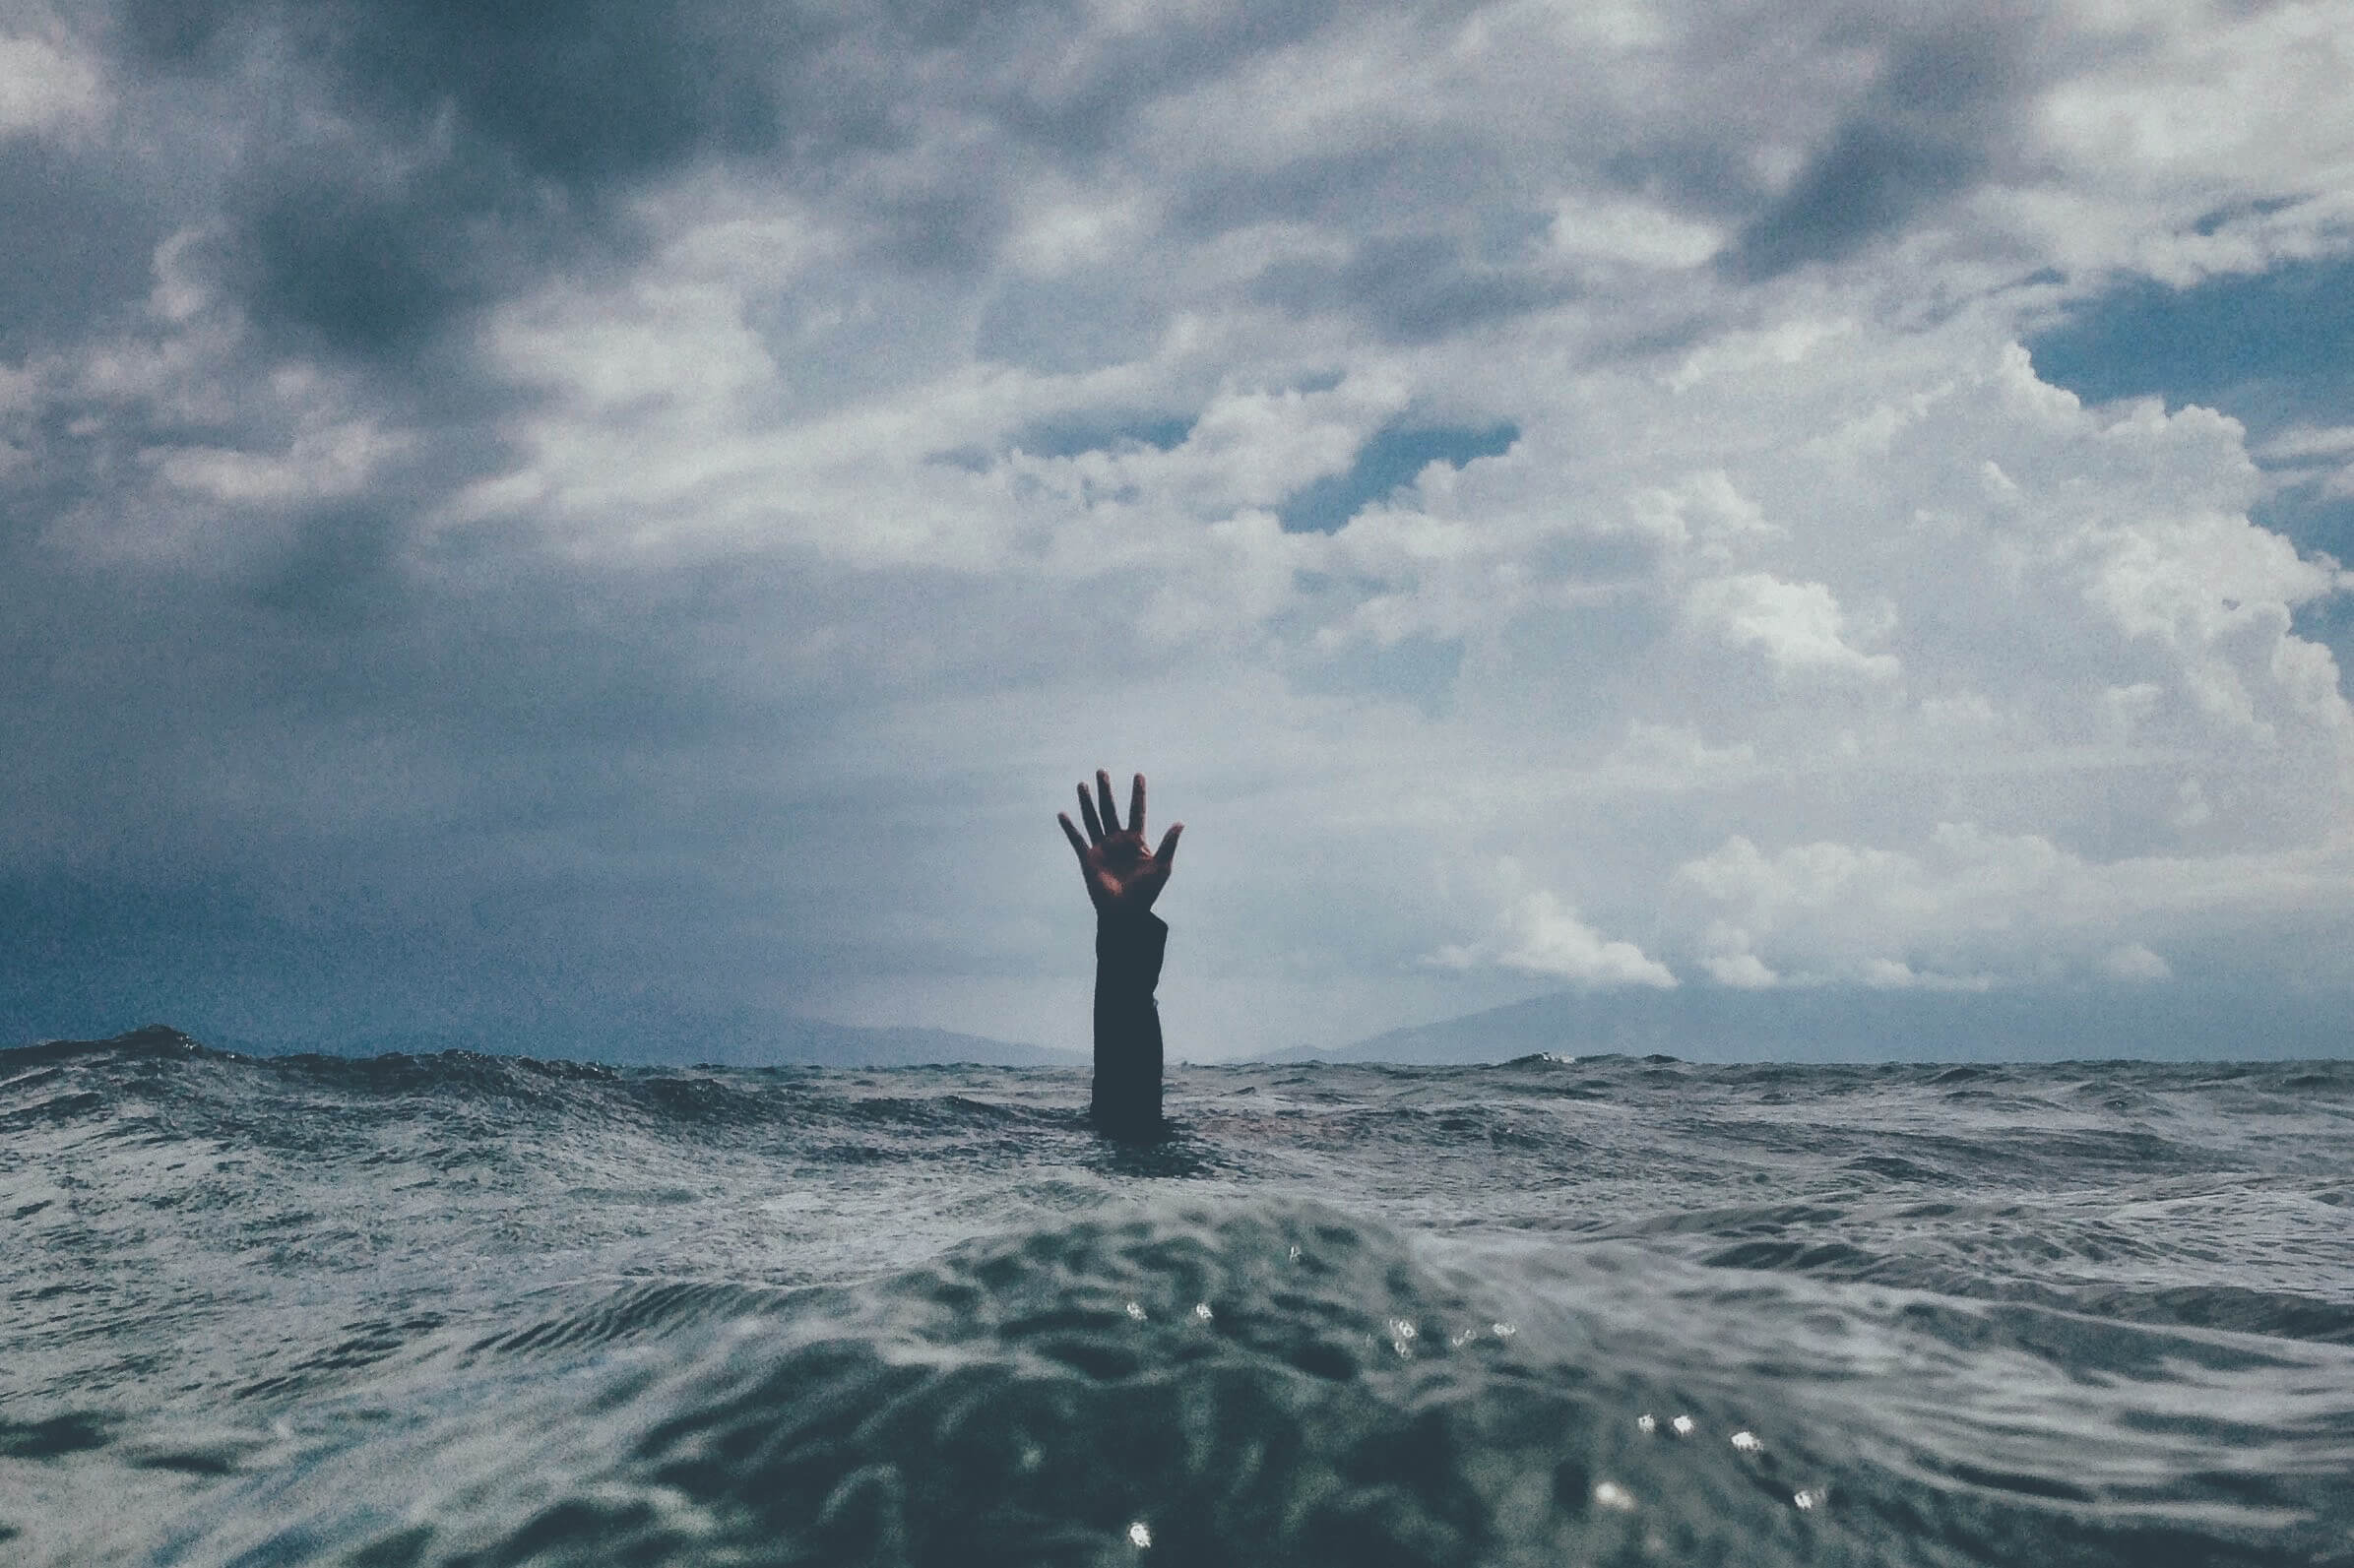 Person drowning in a sea of uncertainty and stress caused by an unsafe team environment